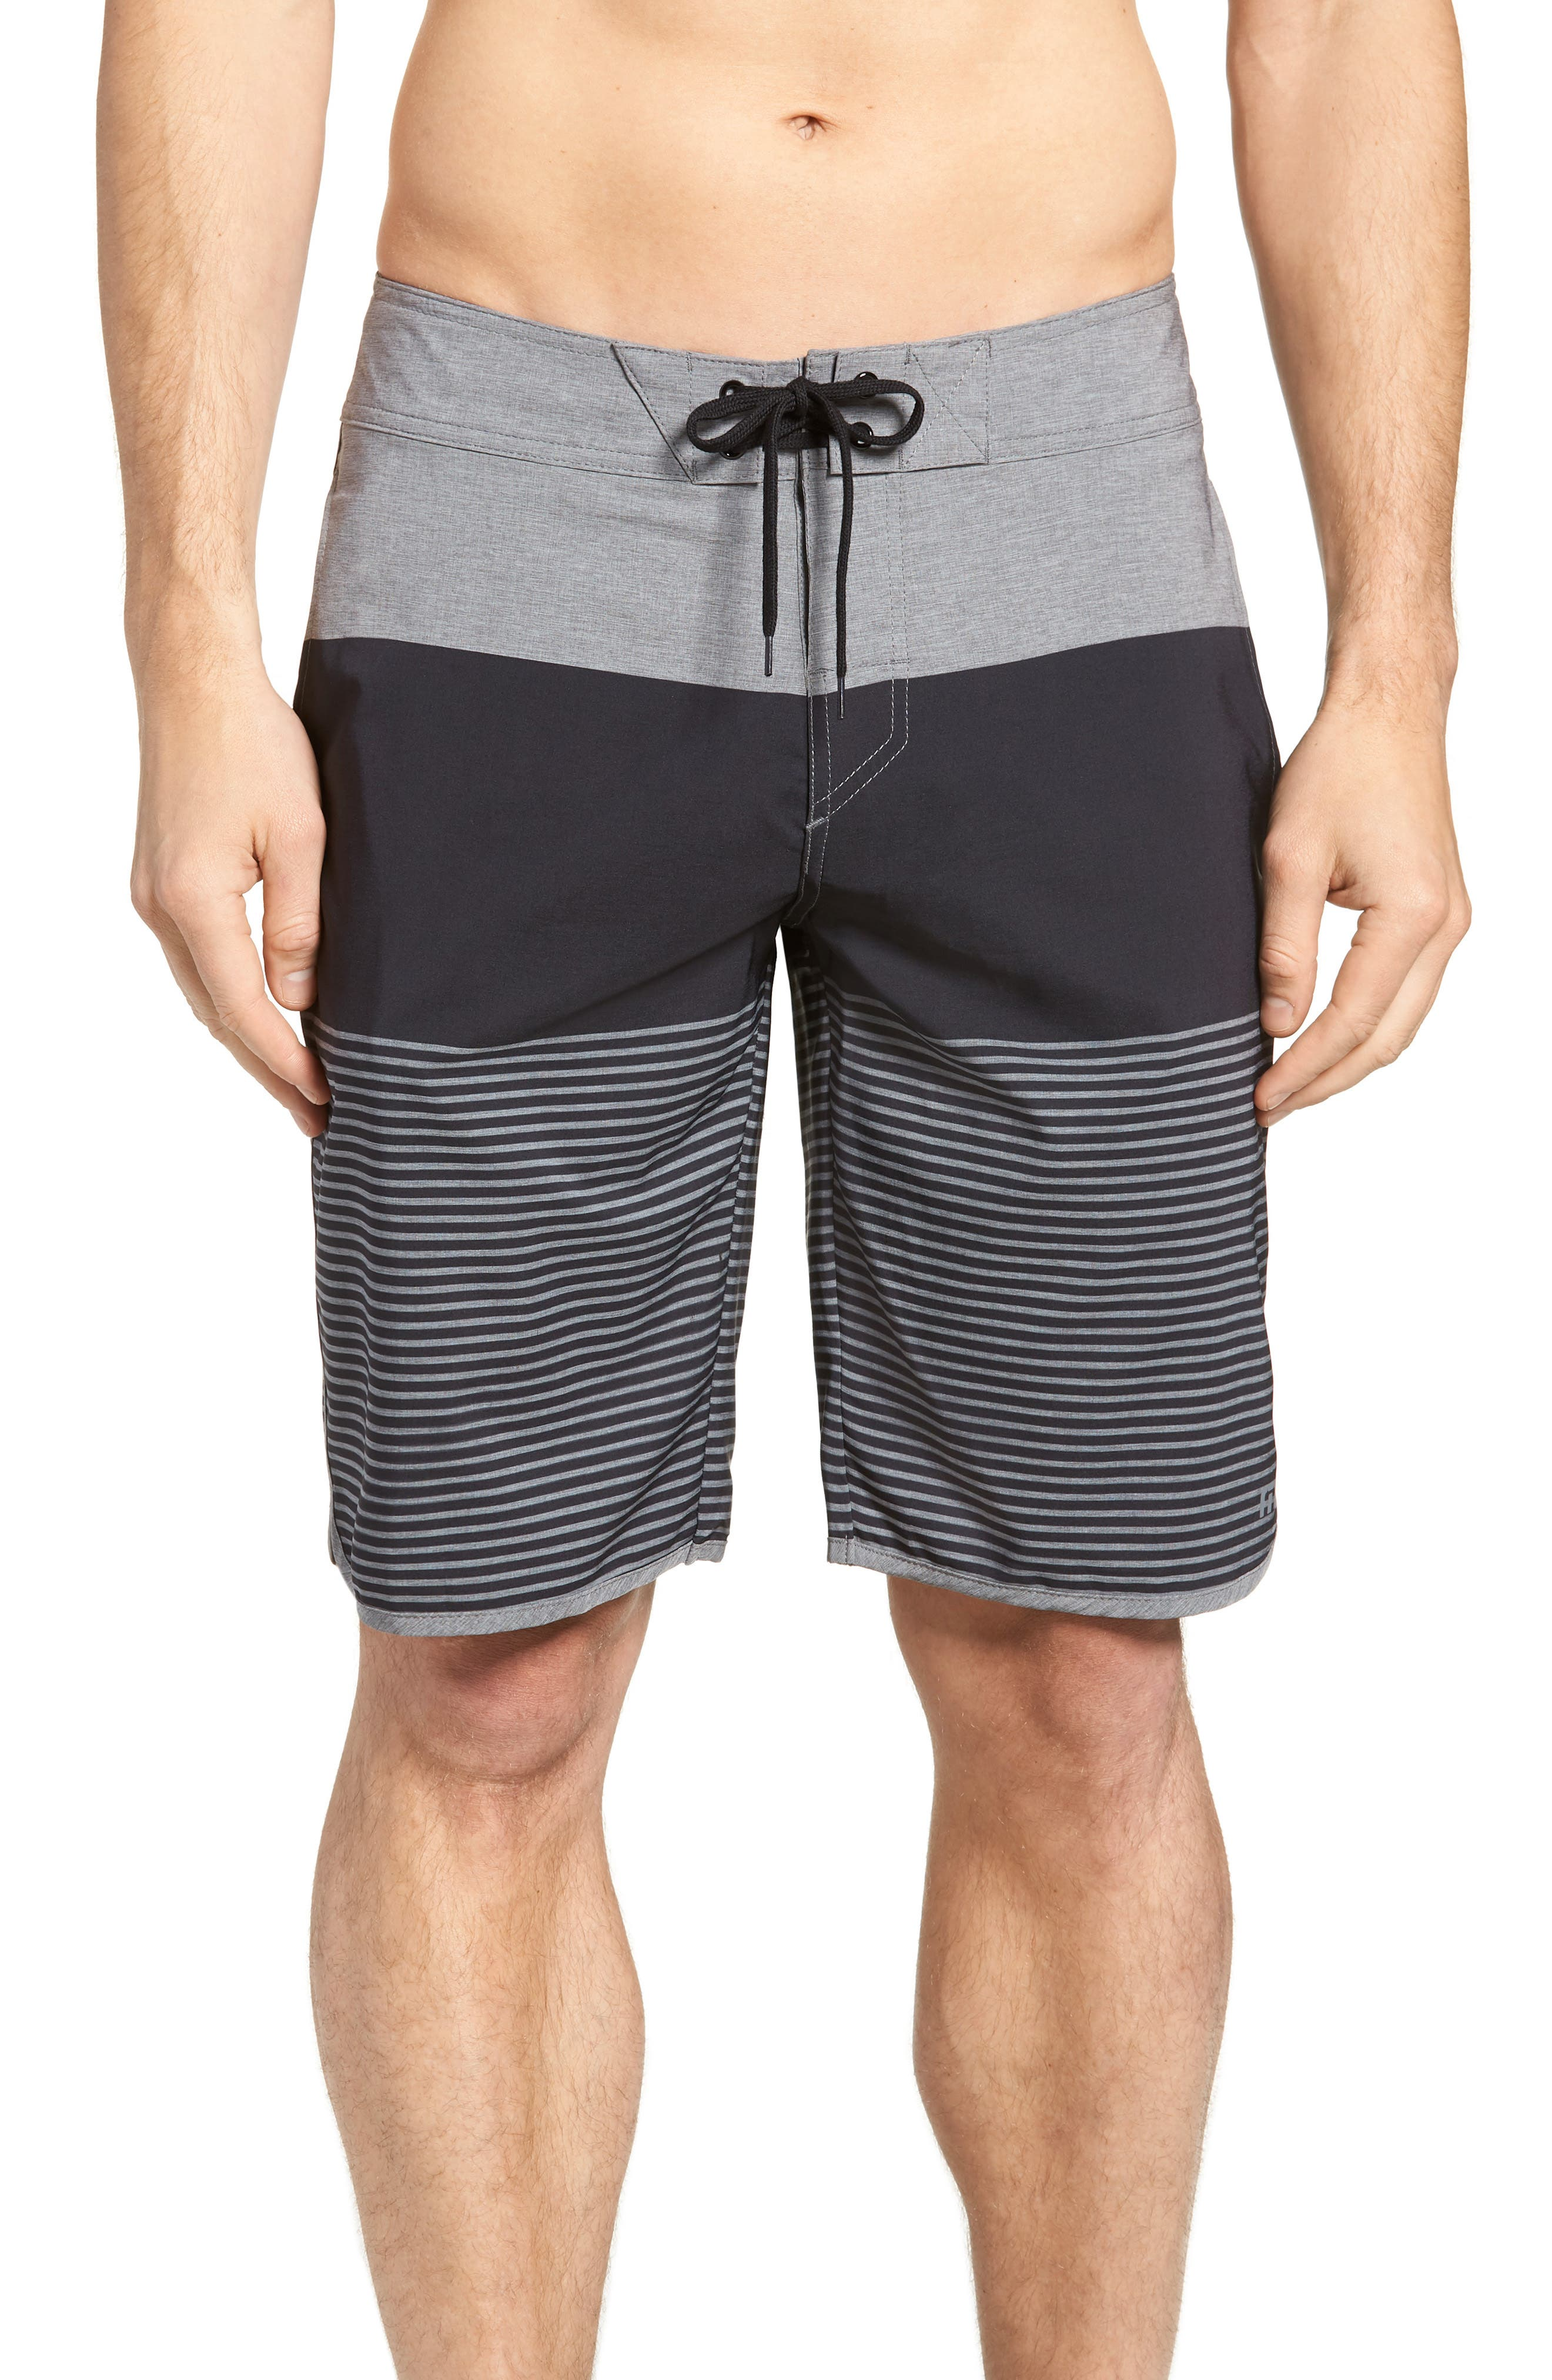 Claim It Regular Fit Board Shorts,                         Main,                         color, Heather Black